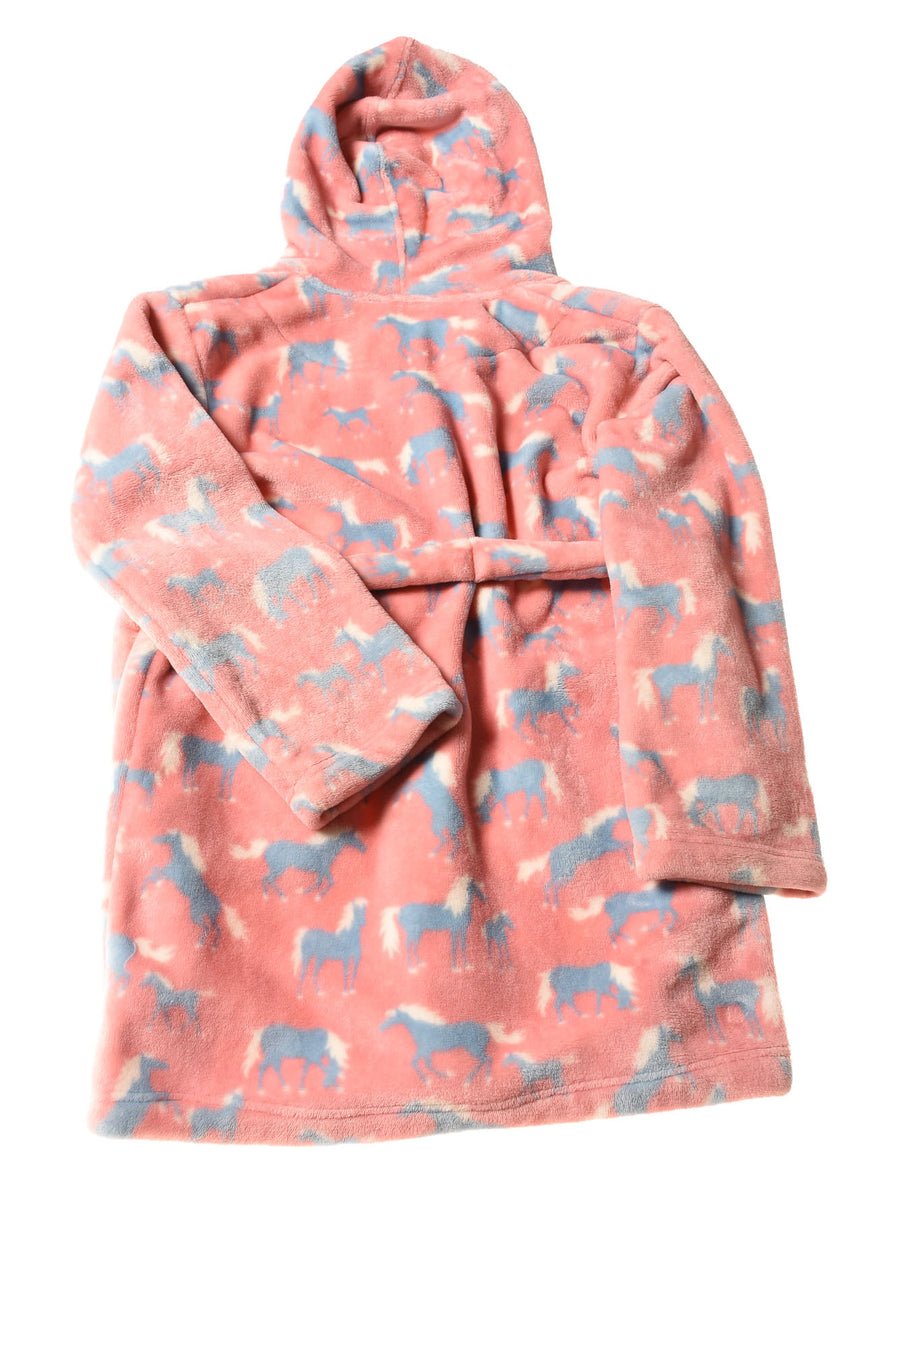 Girl's Robe By Hatley